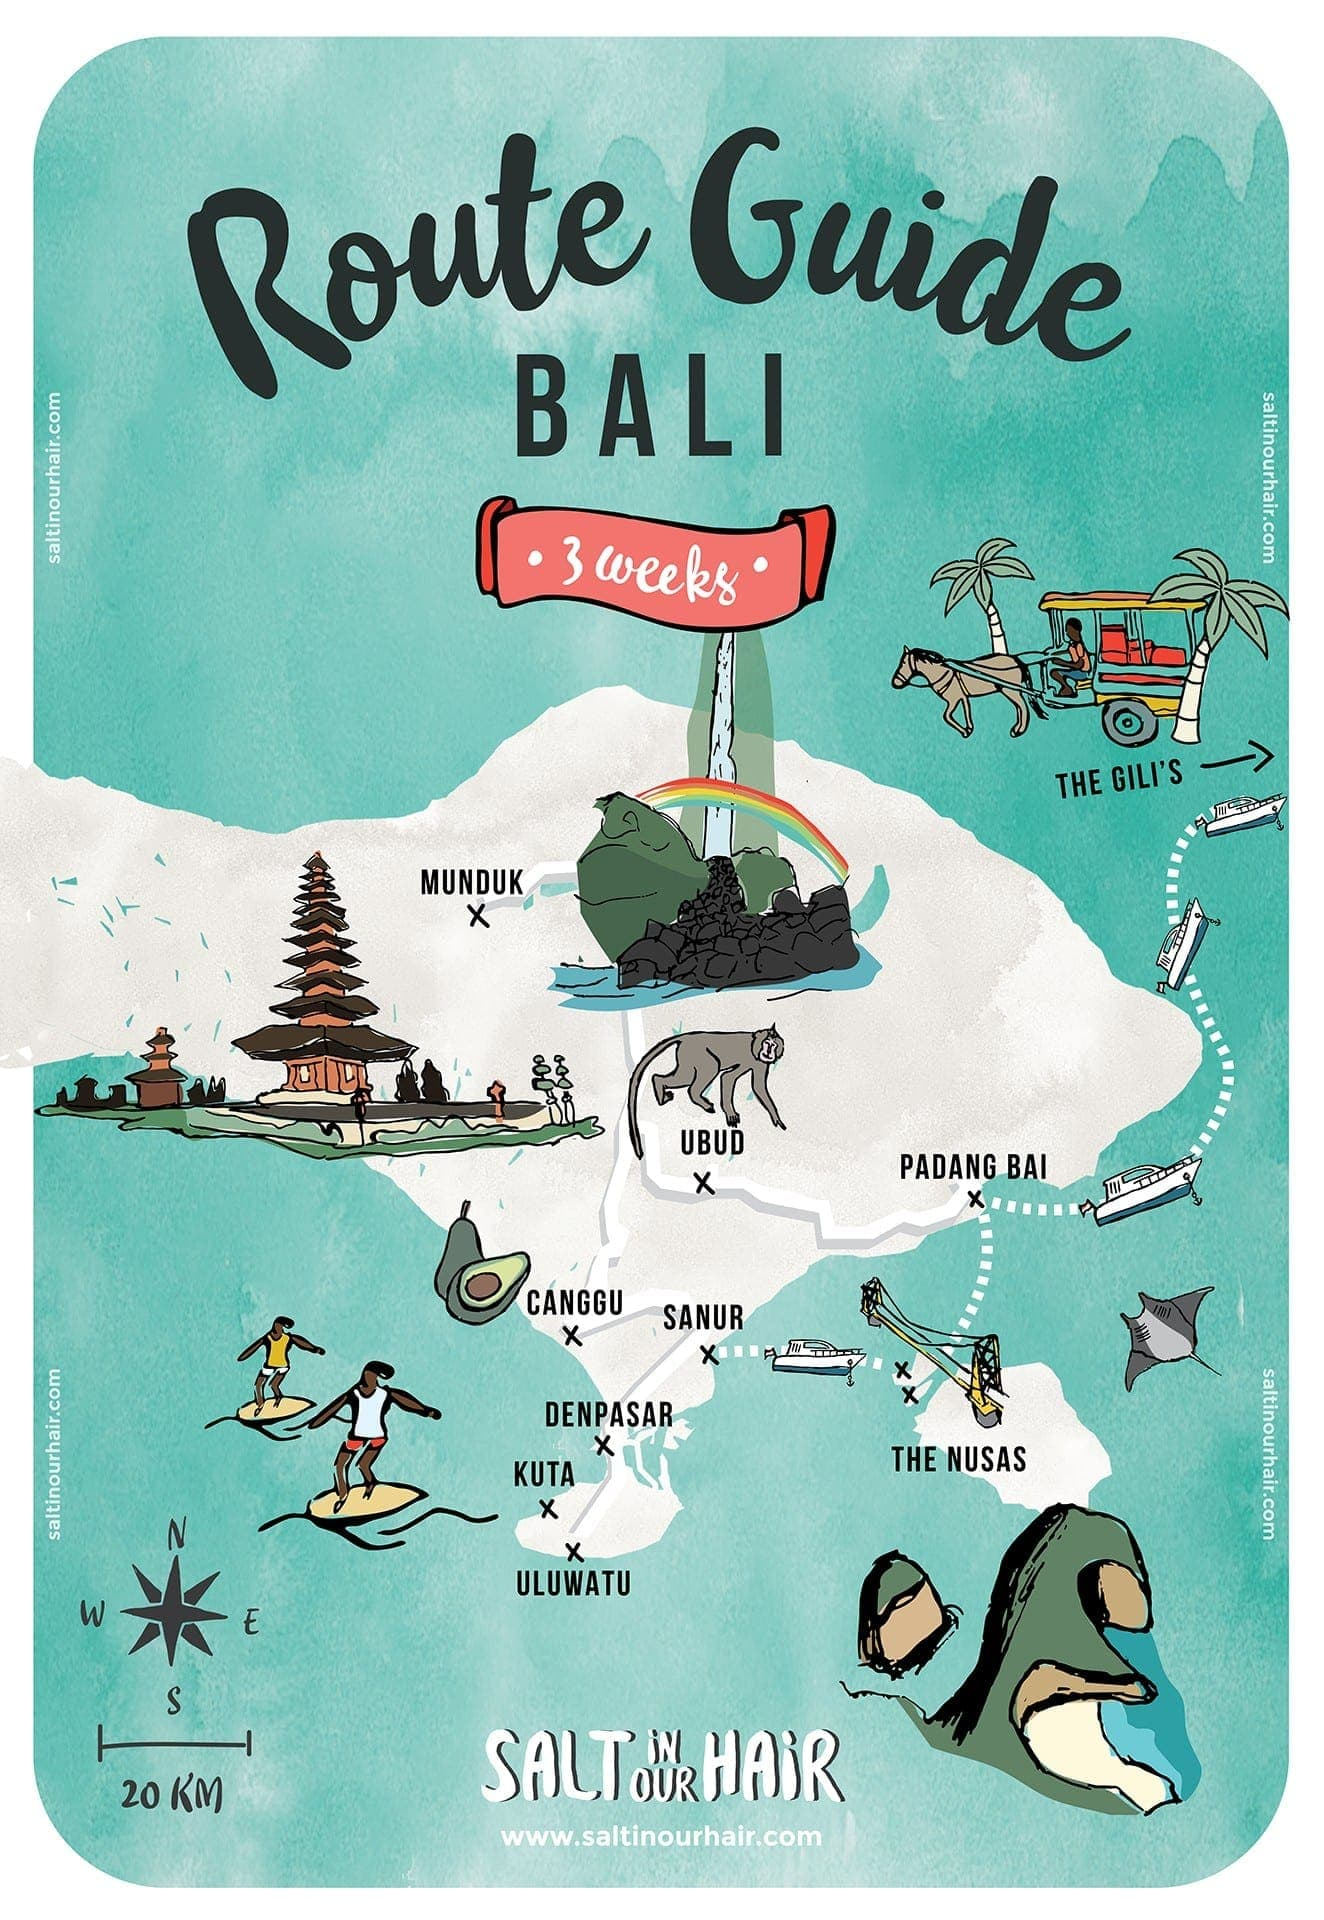 Bali route map 3 weeks